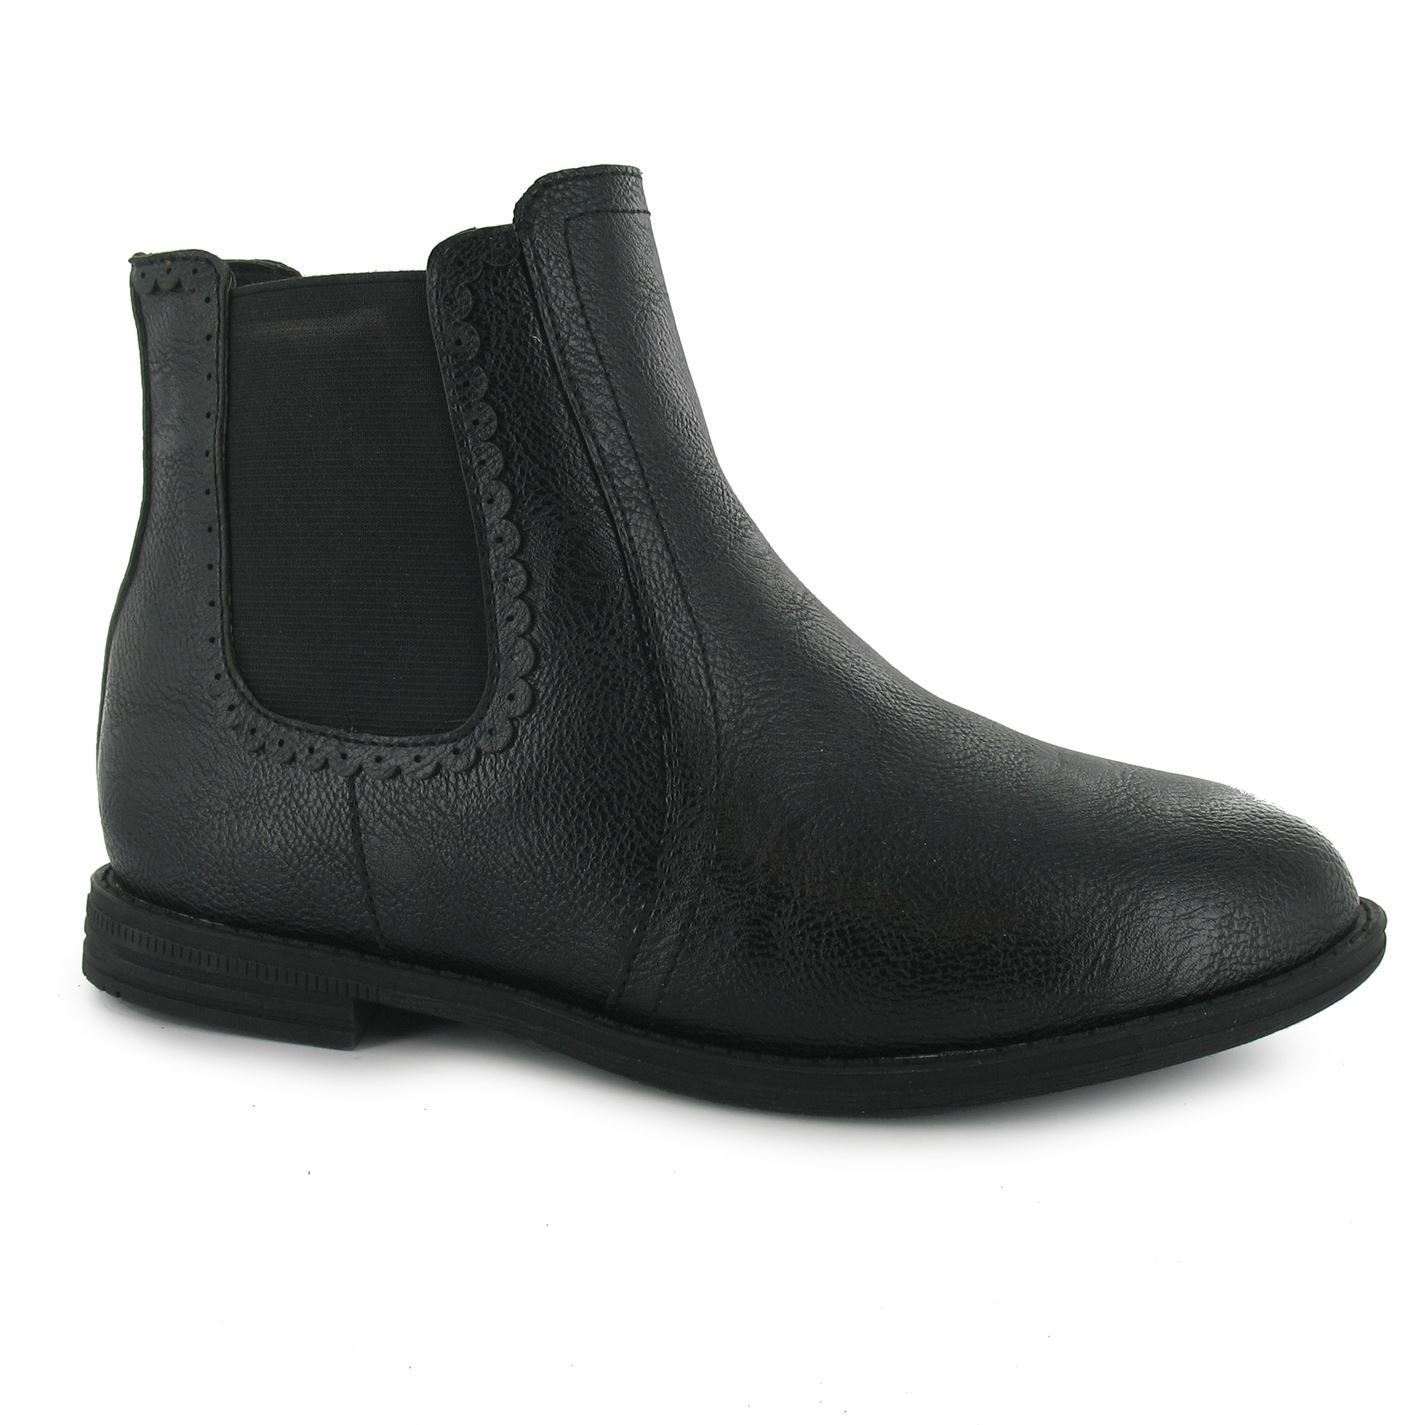 miso chelsea juniors boys boots flat low heel ankle